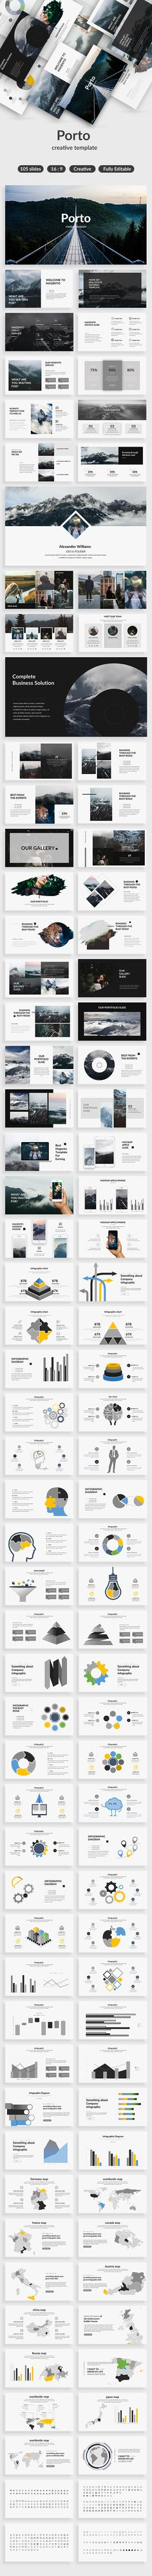 Porto Creative Keynote Template - Creative Keynote Templates